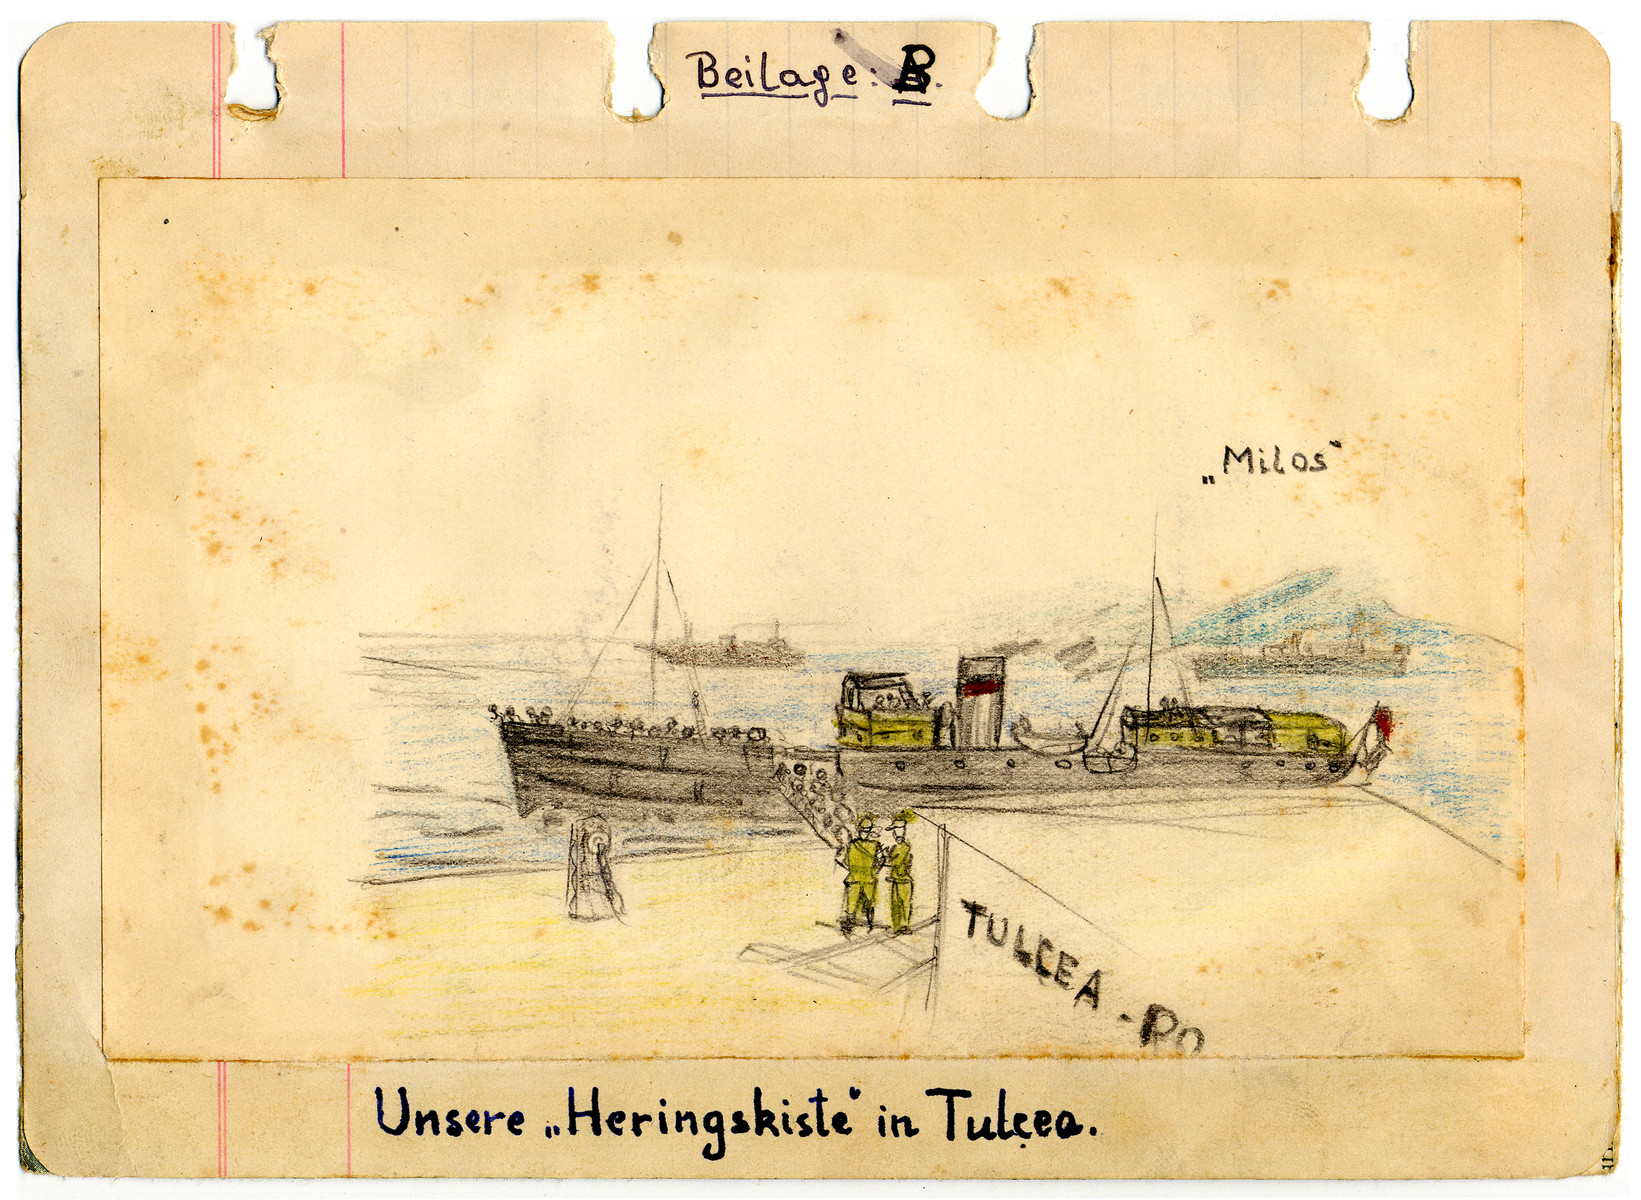 Drawing of the Milos in Haifa Harbor done by a friend of Egon Weiss while interned in the Athlit detention camp.